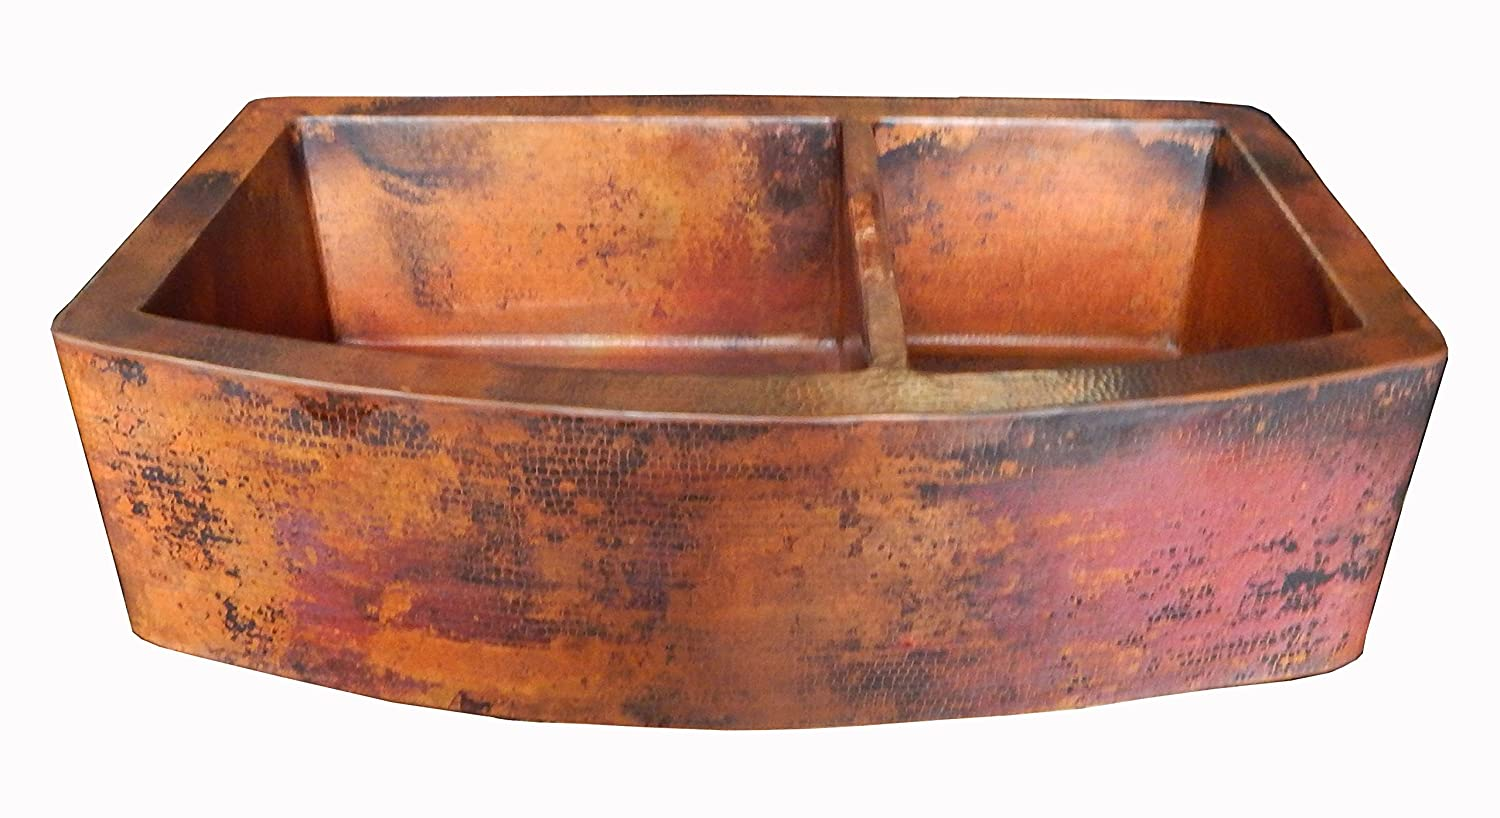 Lovely Rounded Apron Front Farmhouse Kitchen Double Bowl Mexican Copper Sink 60/40  33X22 Inches     Amazon.com